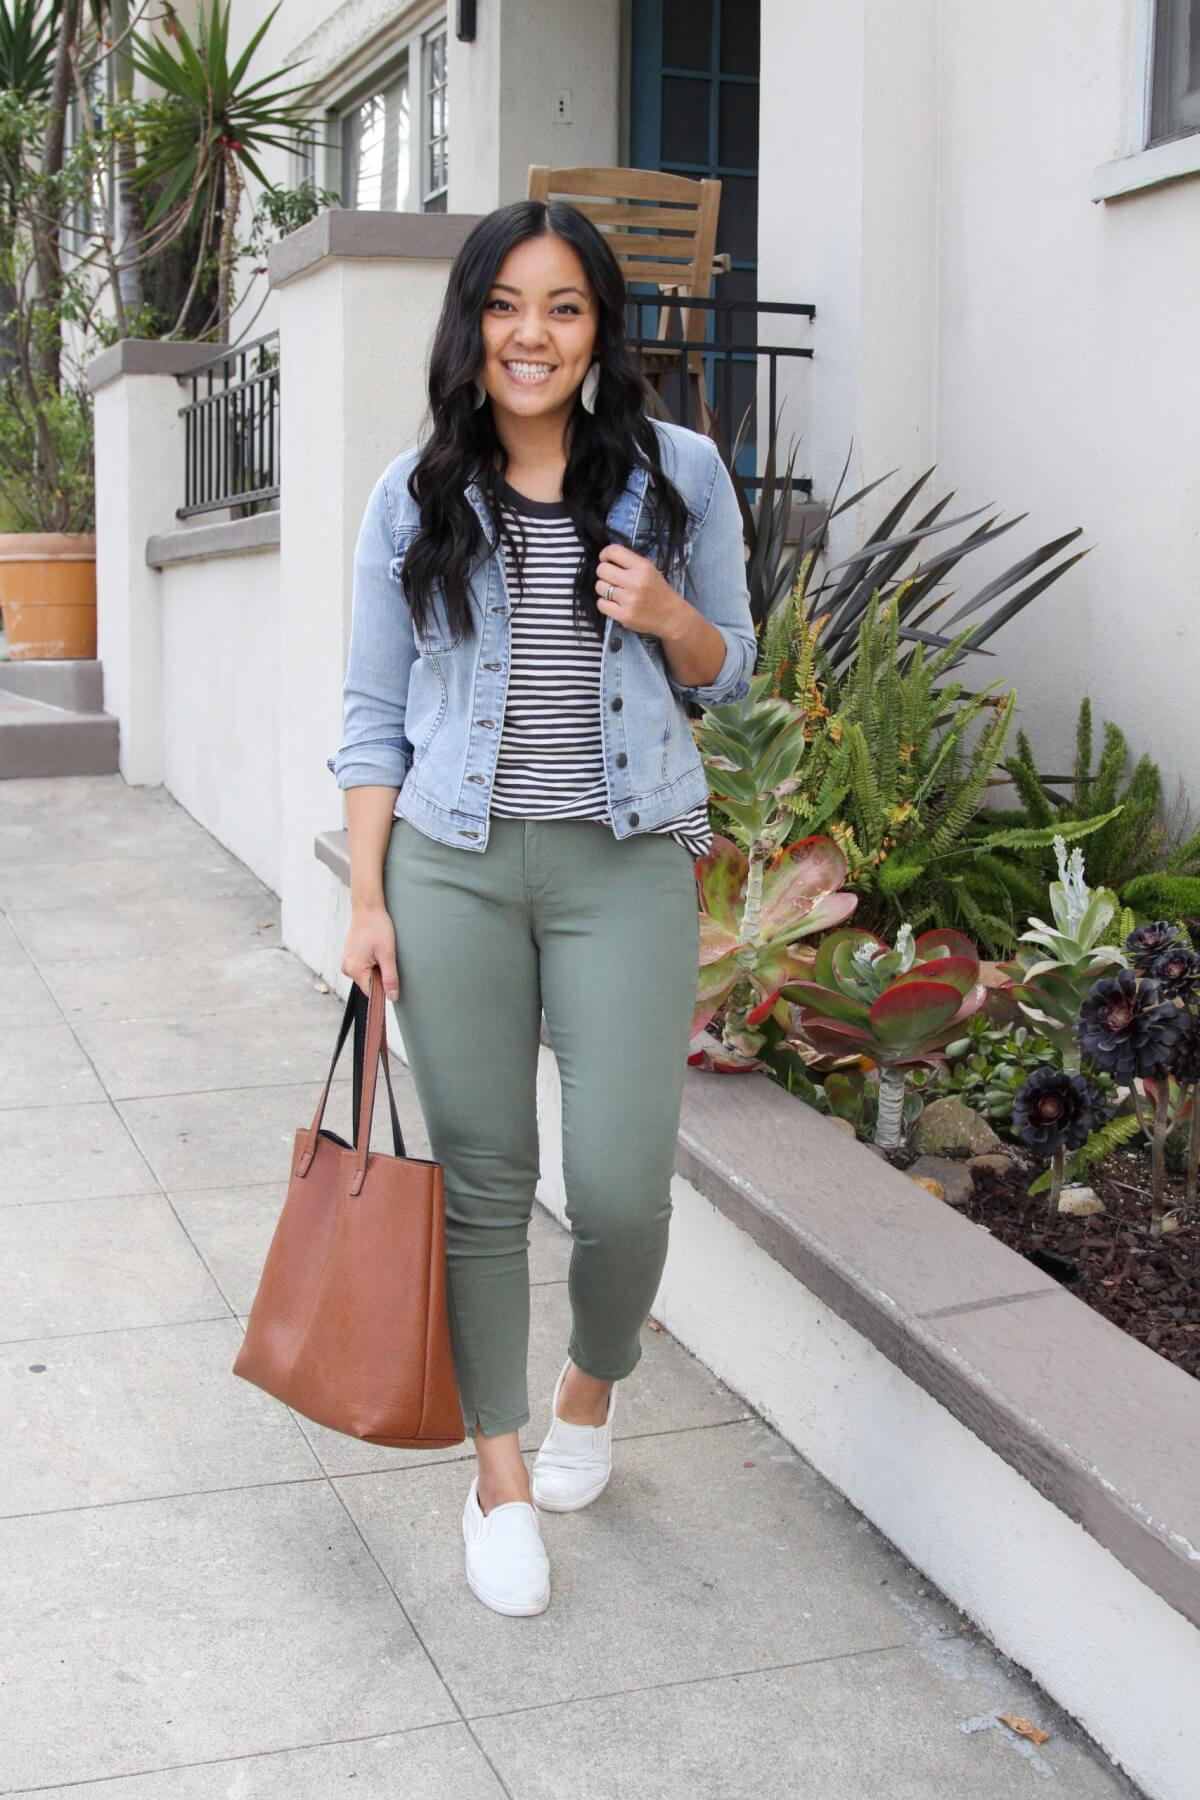 Casual Outfit: denim jacket + black and white striped tee + olive pants + white slip-on sneakers + tan tote + white earrings